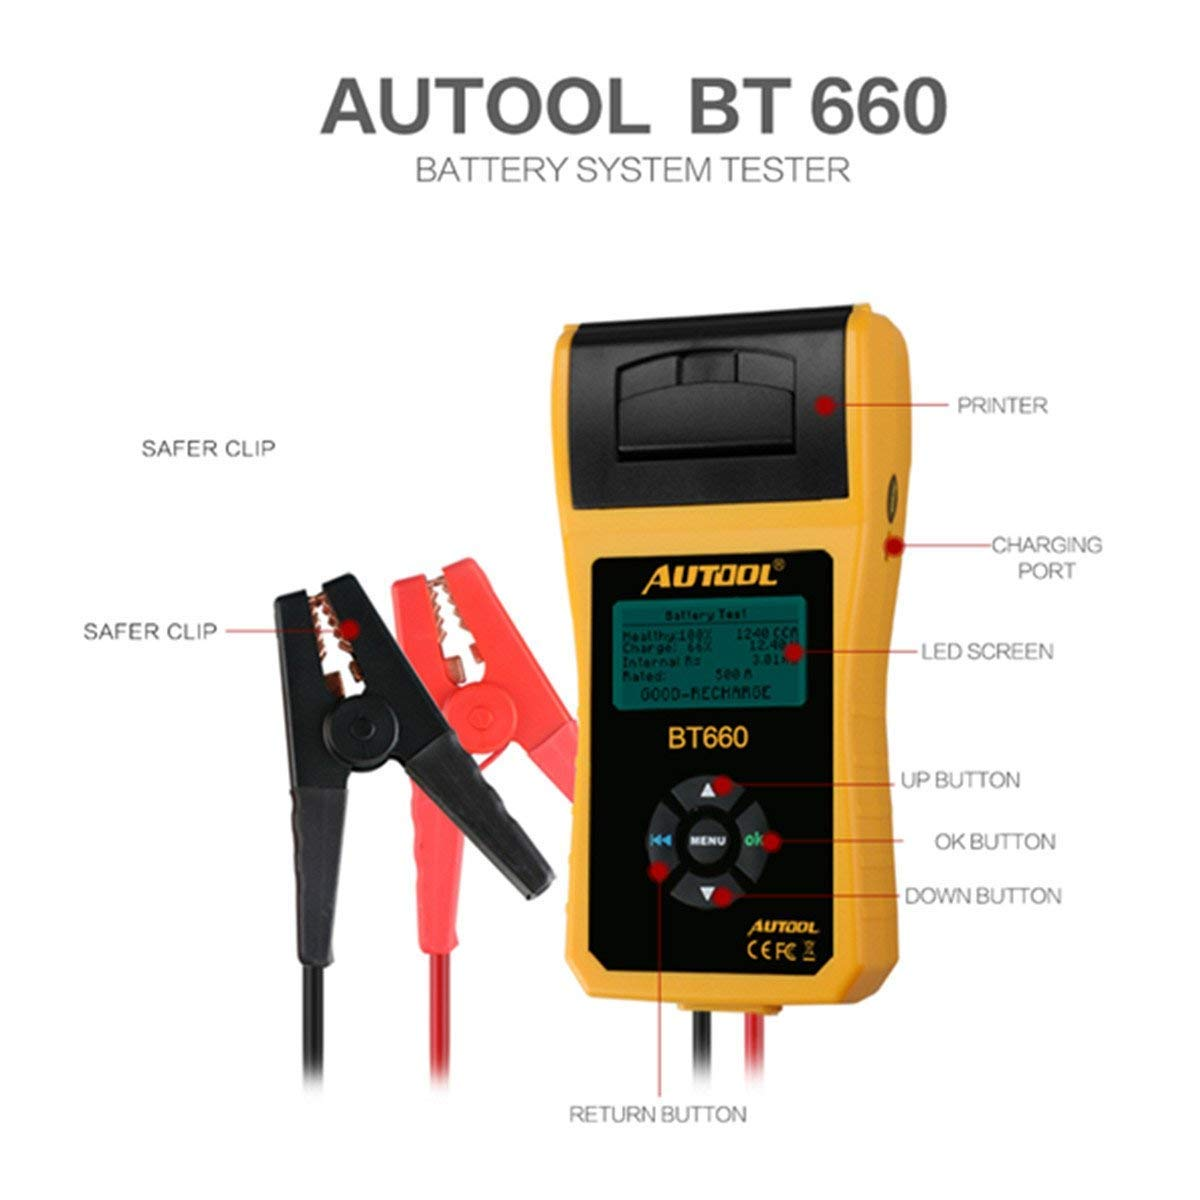 AUTOOL BT660 CCA 100-3000 12V/24V Battery Load Tester, Car Cranking and Charging System Analyzer Scan Tool with Printer for Heavy Duty Trucks, Cars, Motorcycles, Boats by AUTOOL (Image #1)